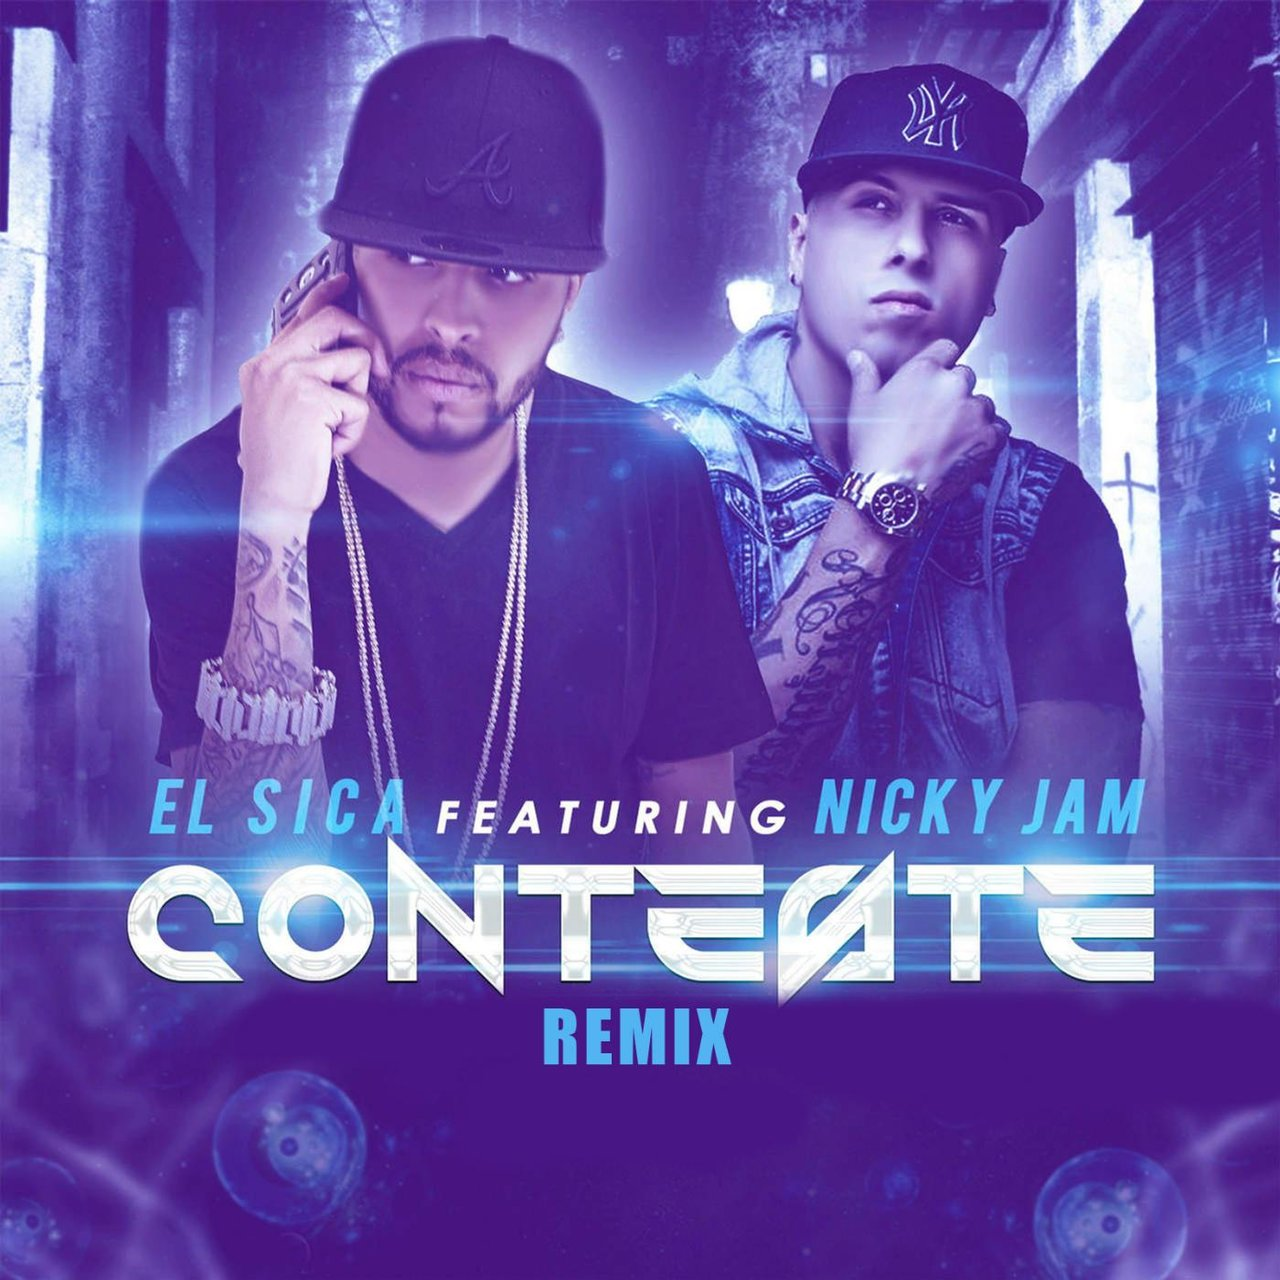 Conteste (Remix) [feat. Nicky Jam]